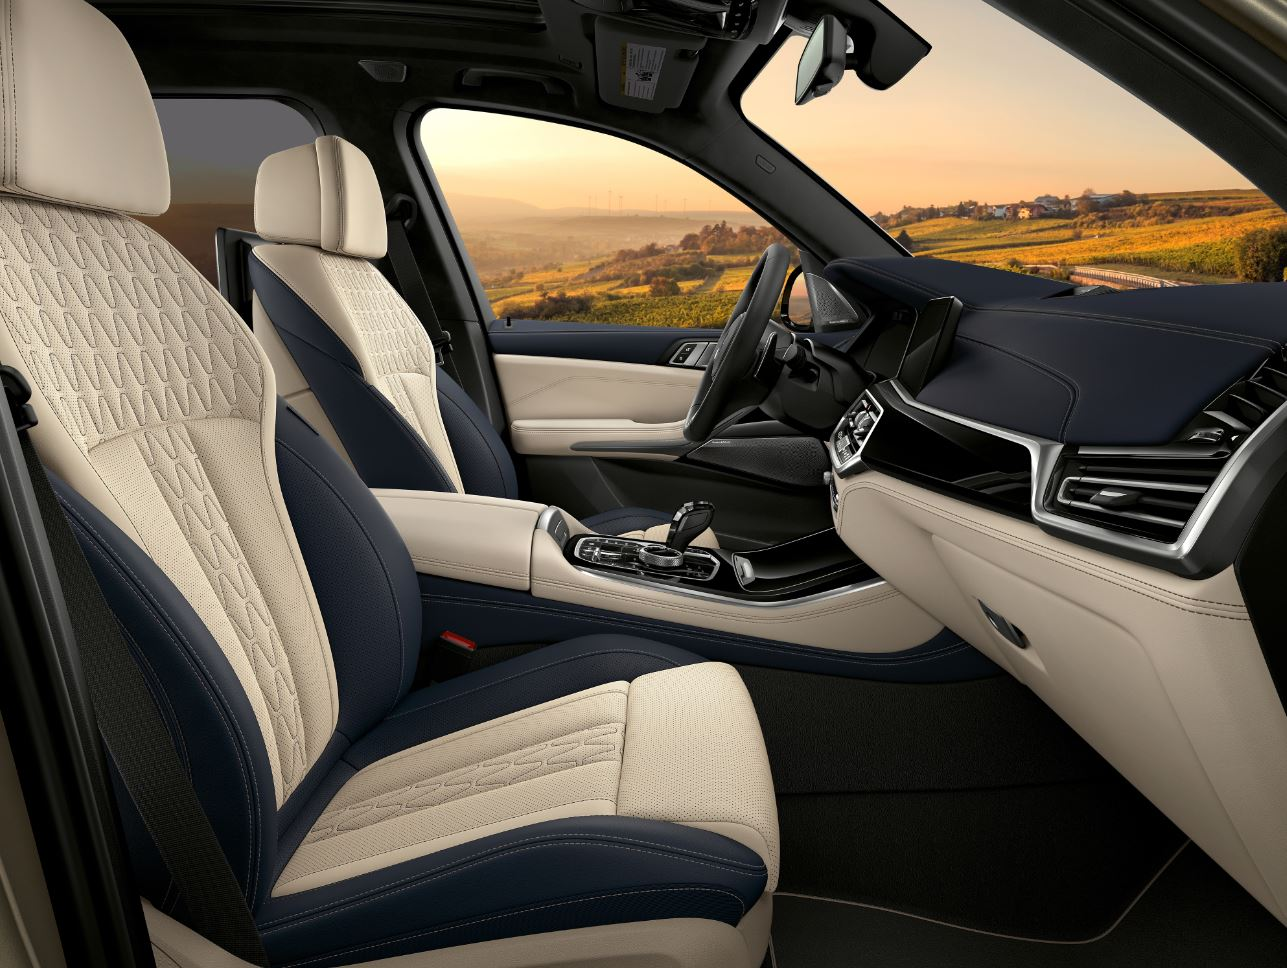 New Bmw X7 Inventory For Sale At Grayson Bmw In Knoxville